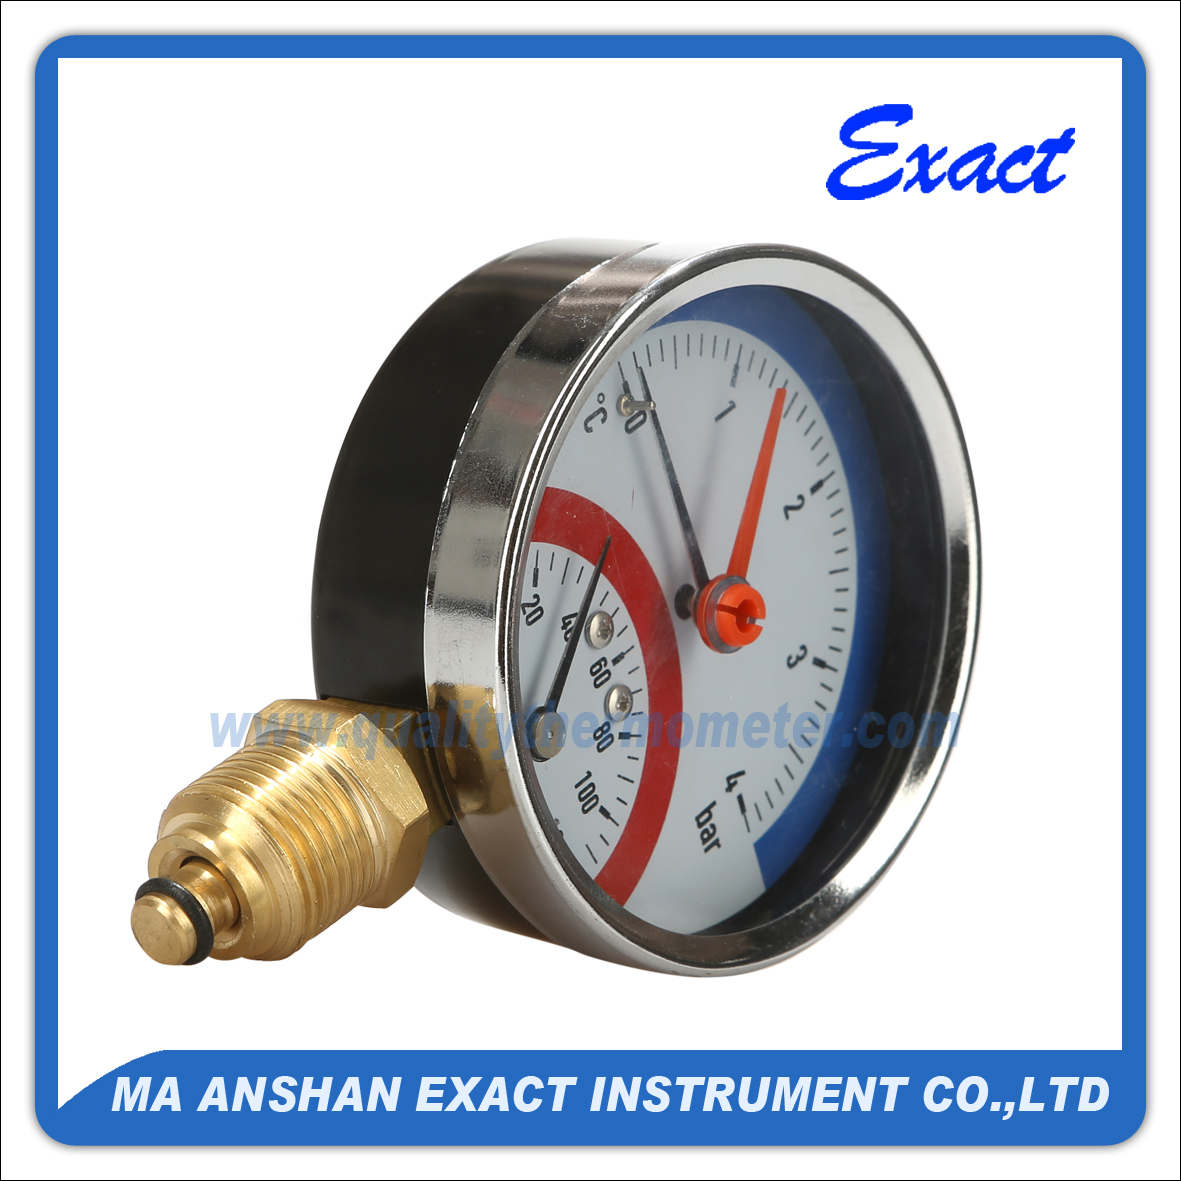 Bottom Connection Thermo-manometer